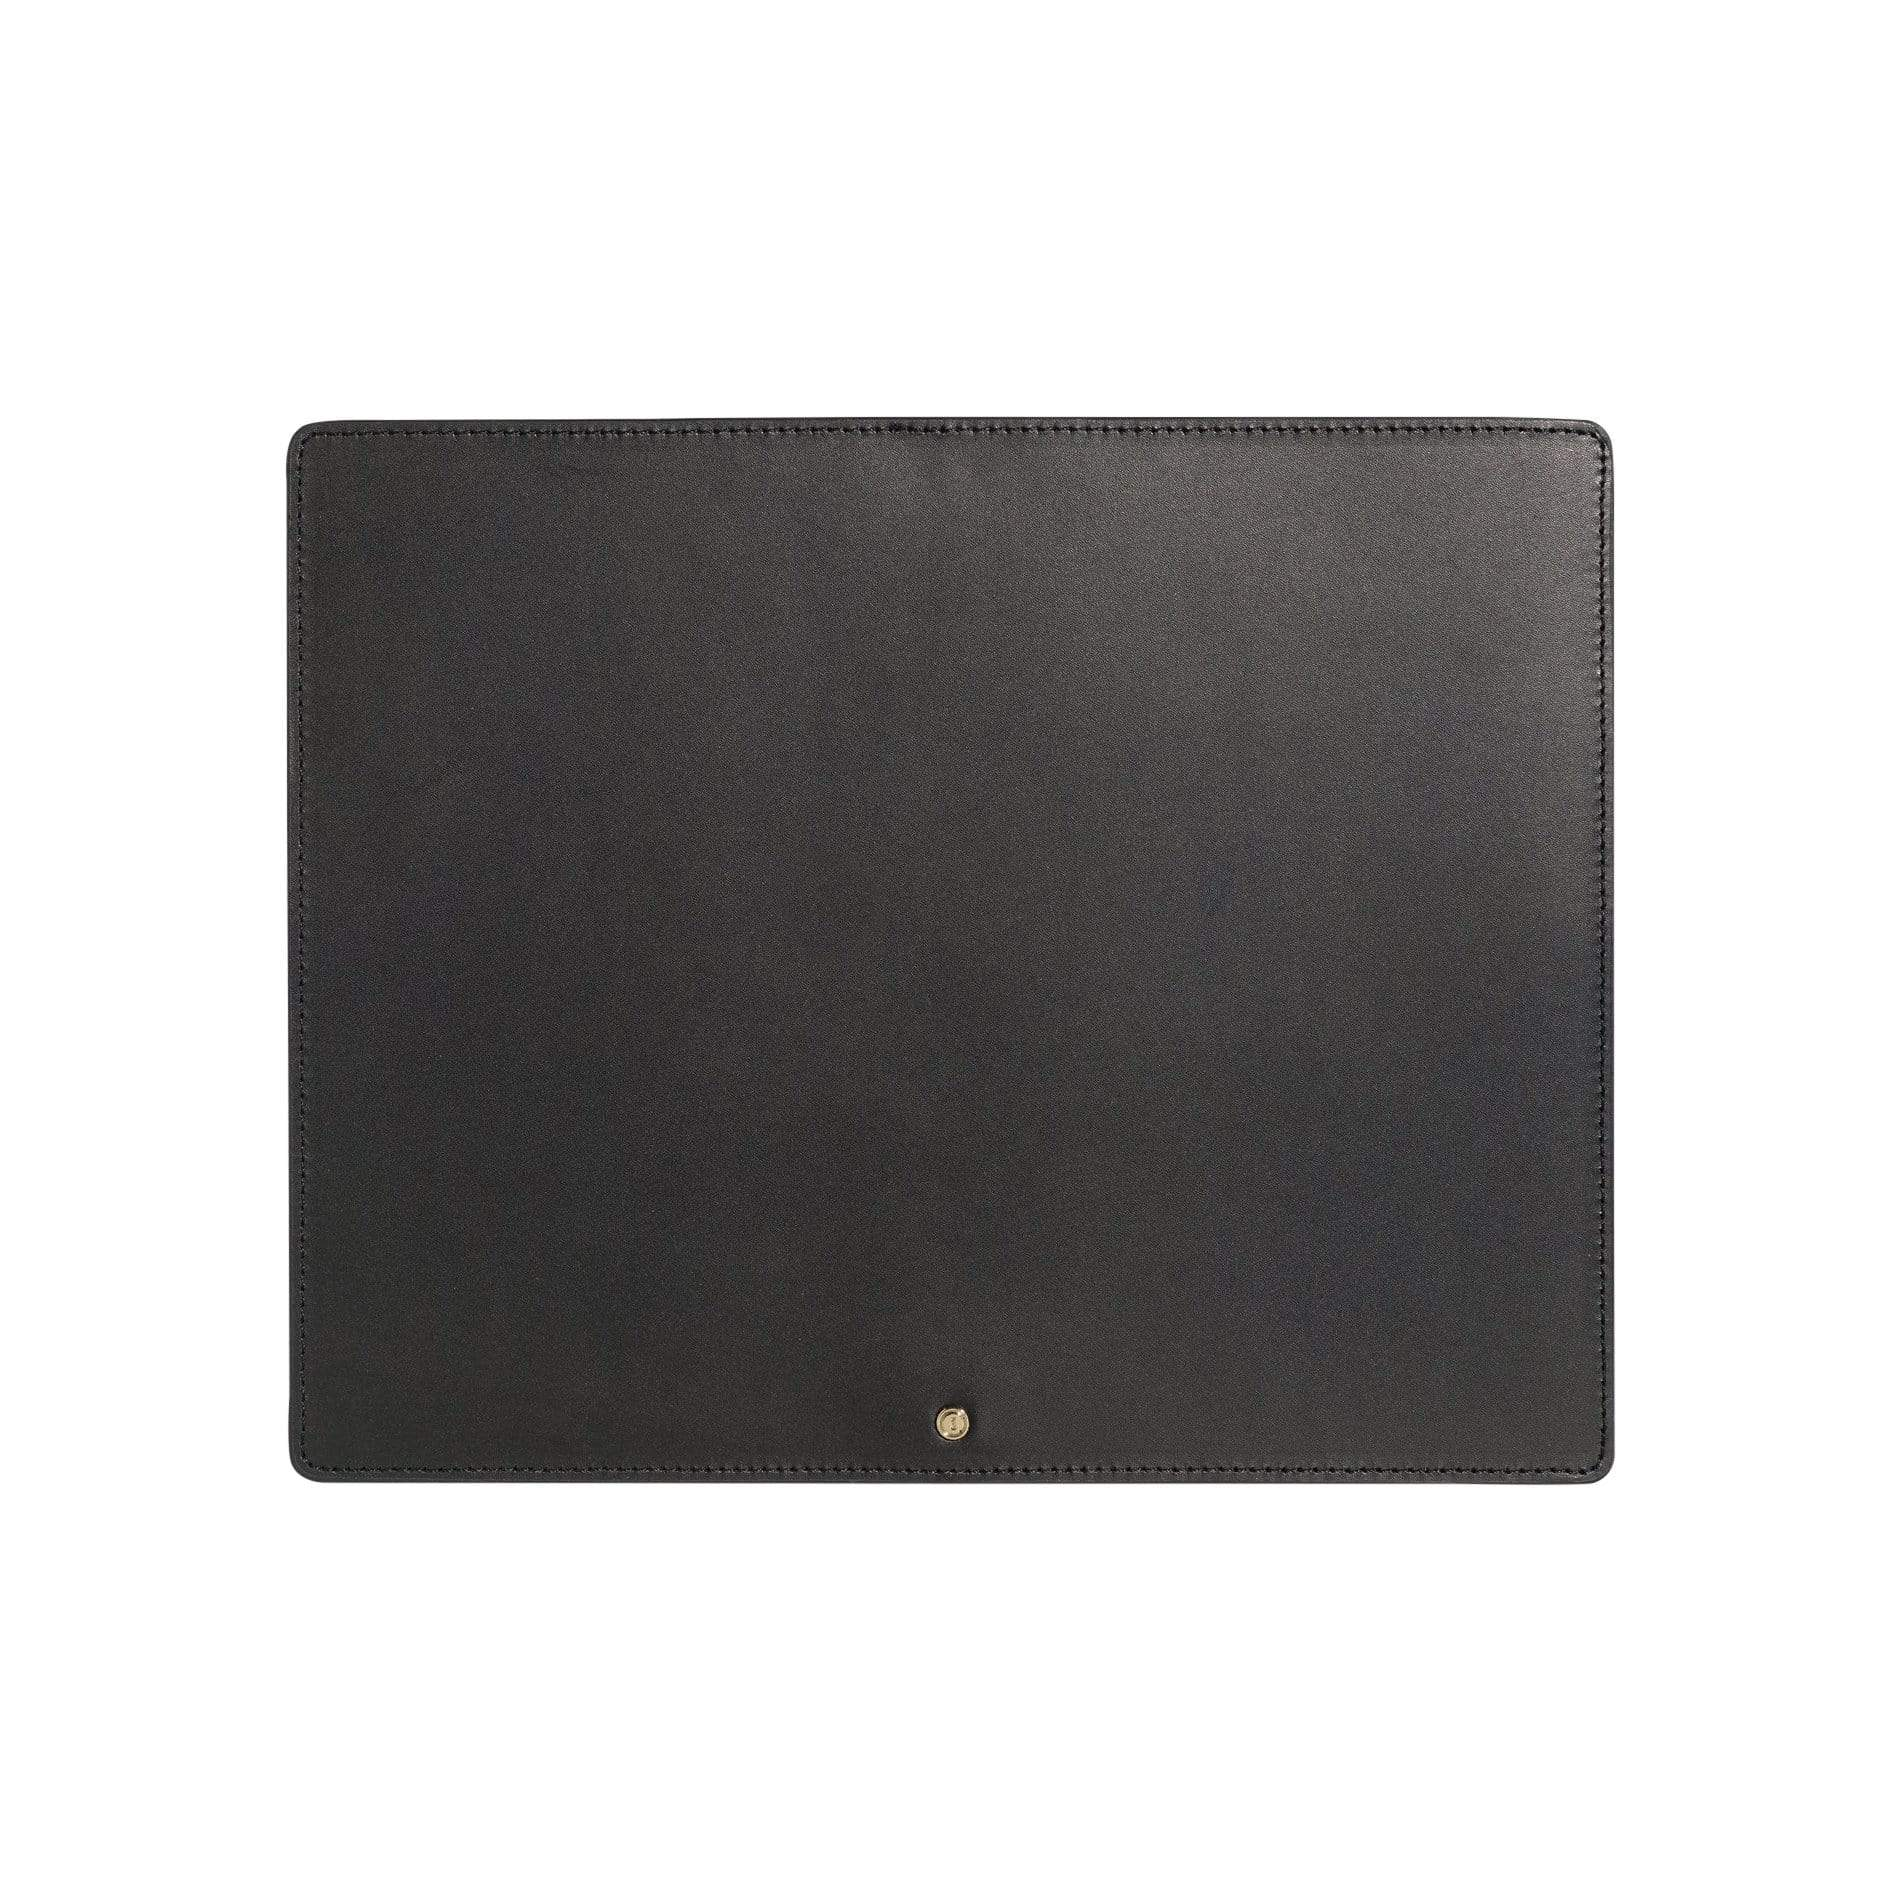 INVENTERY Desk Accessories Leather Mouse Pad